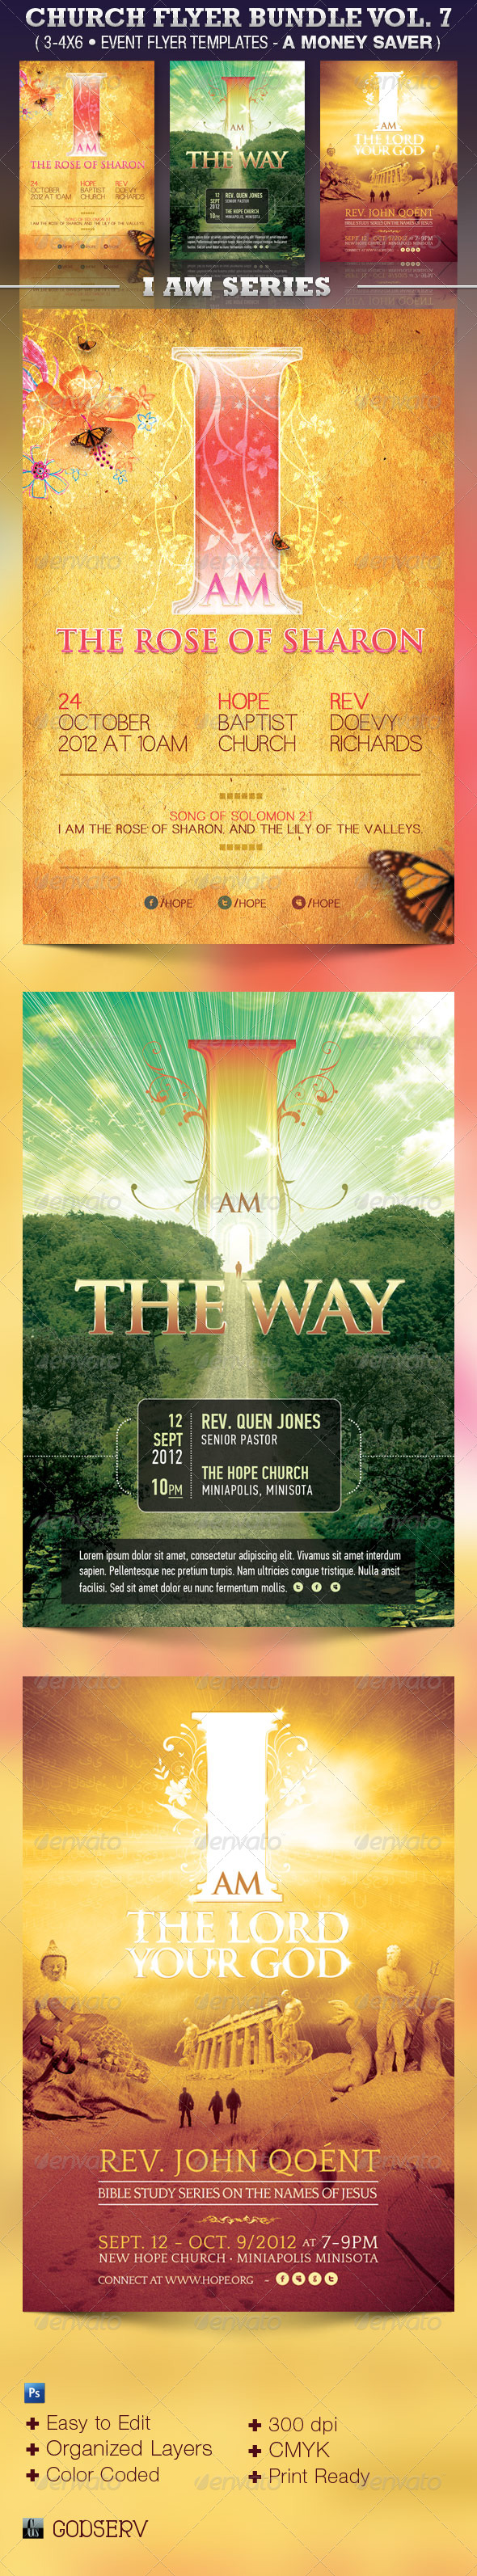 Church Flyer Template Bundle Vol 7 - I Am Series - Church Flyers